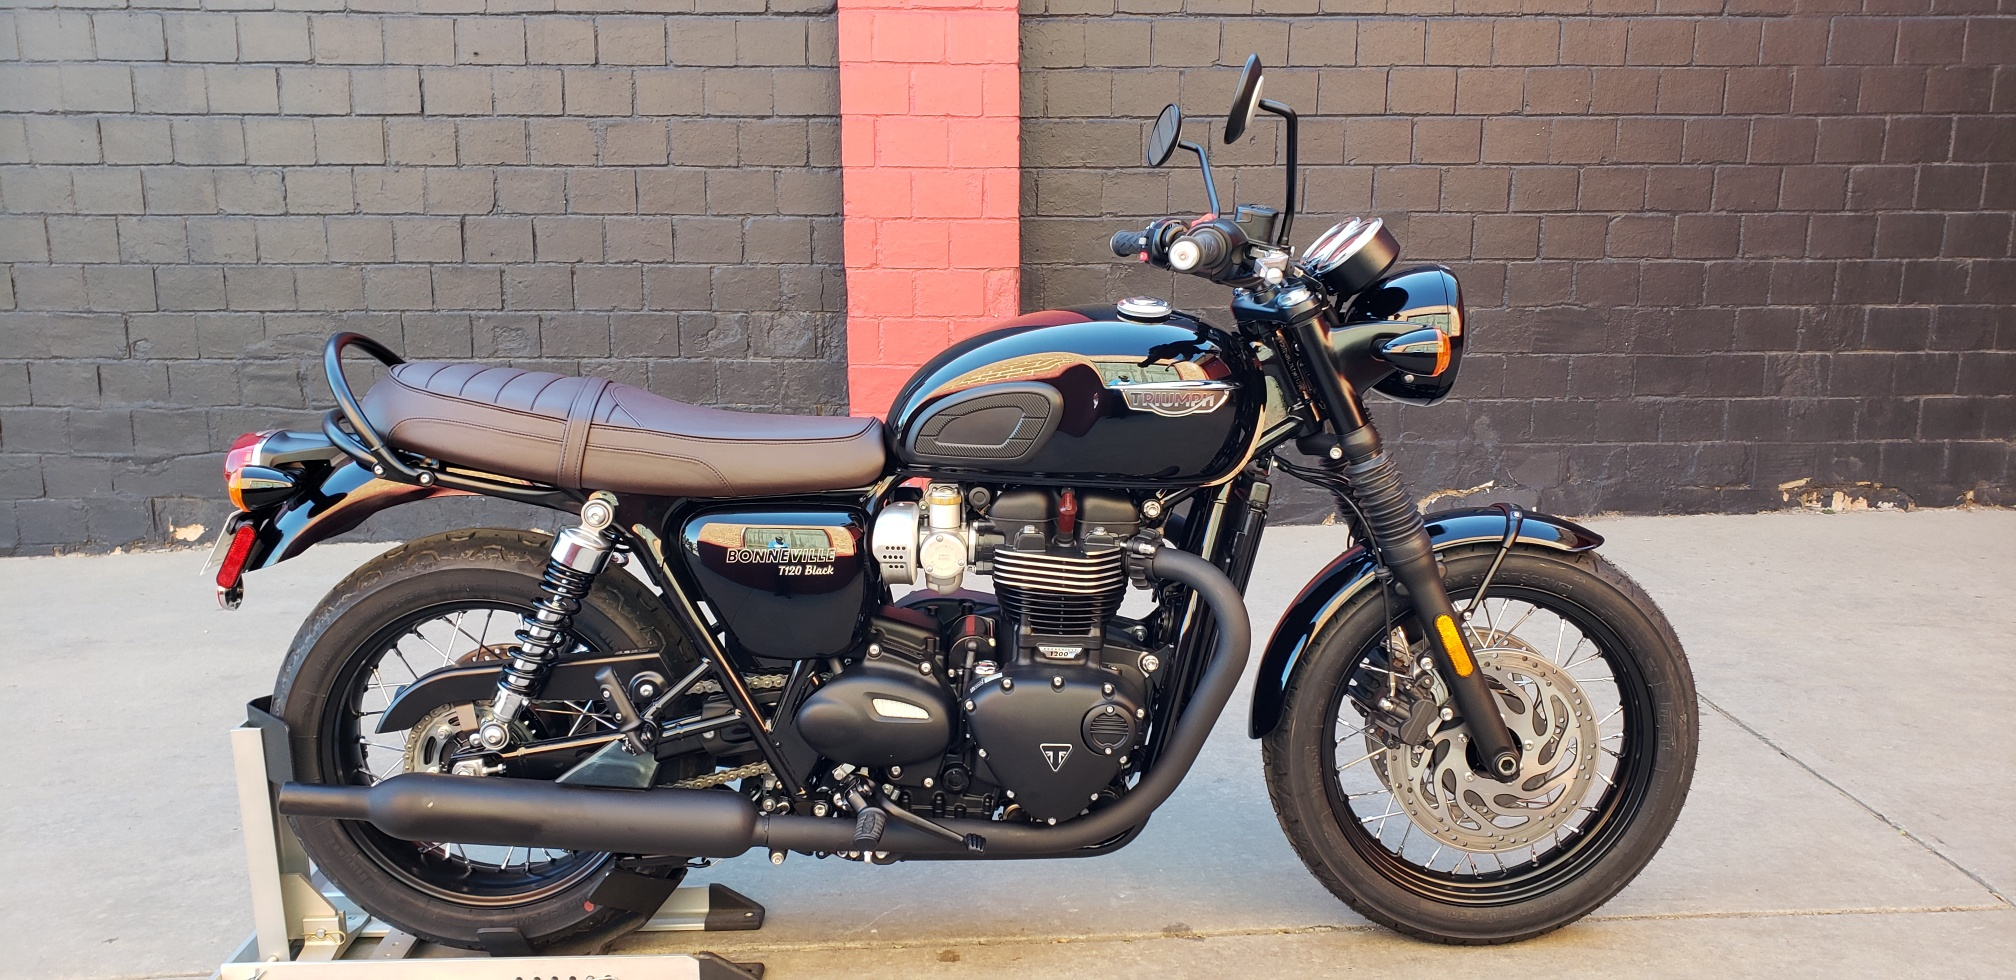 New 2020 TRIUMPH BONNEVILLE T120 BLACK